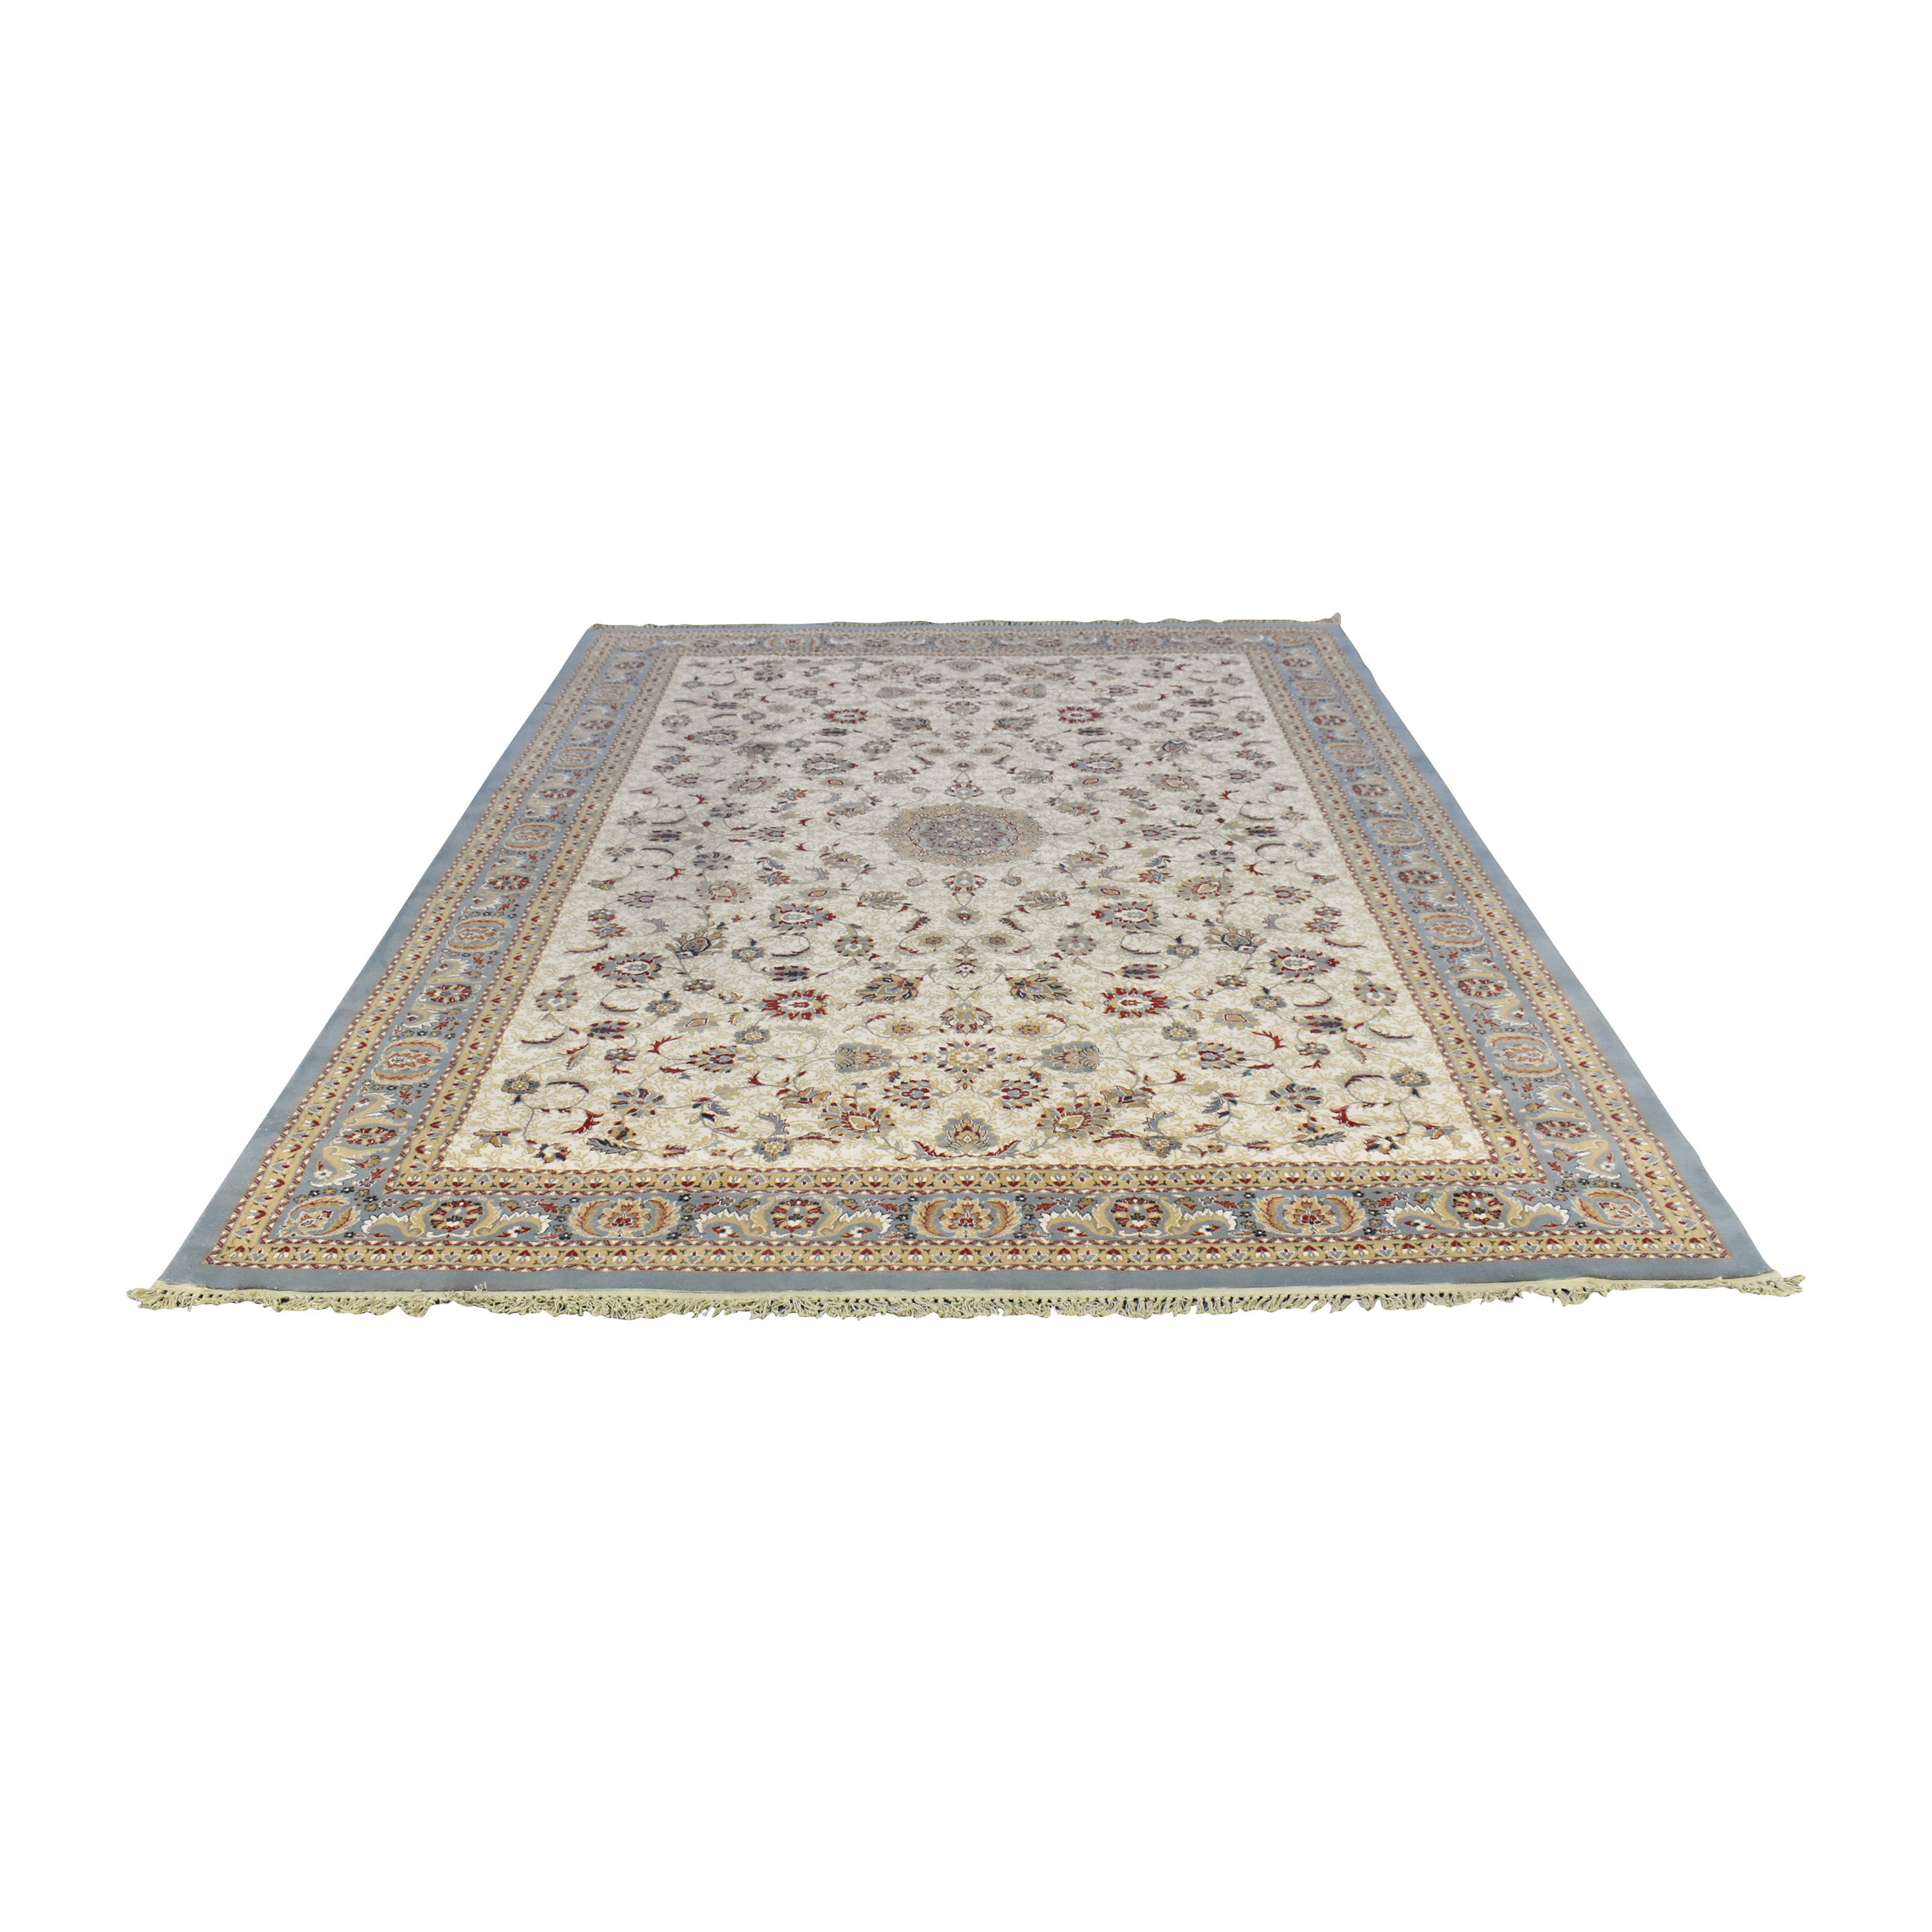 Oriental Weavers Area Rug Oriental Weavers